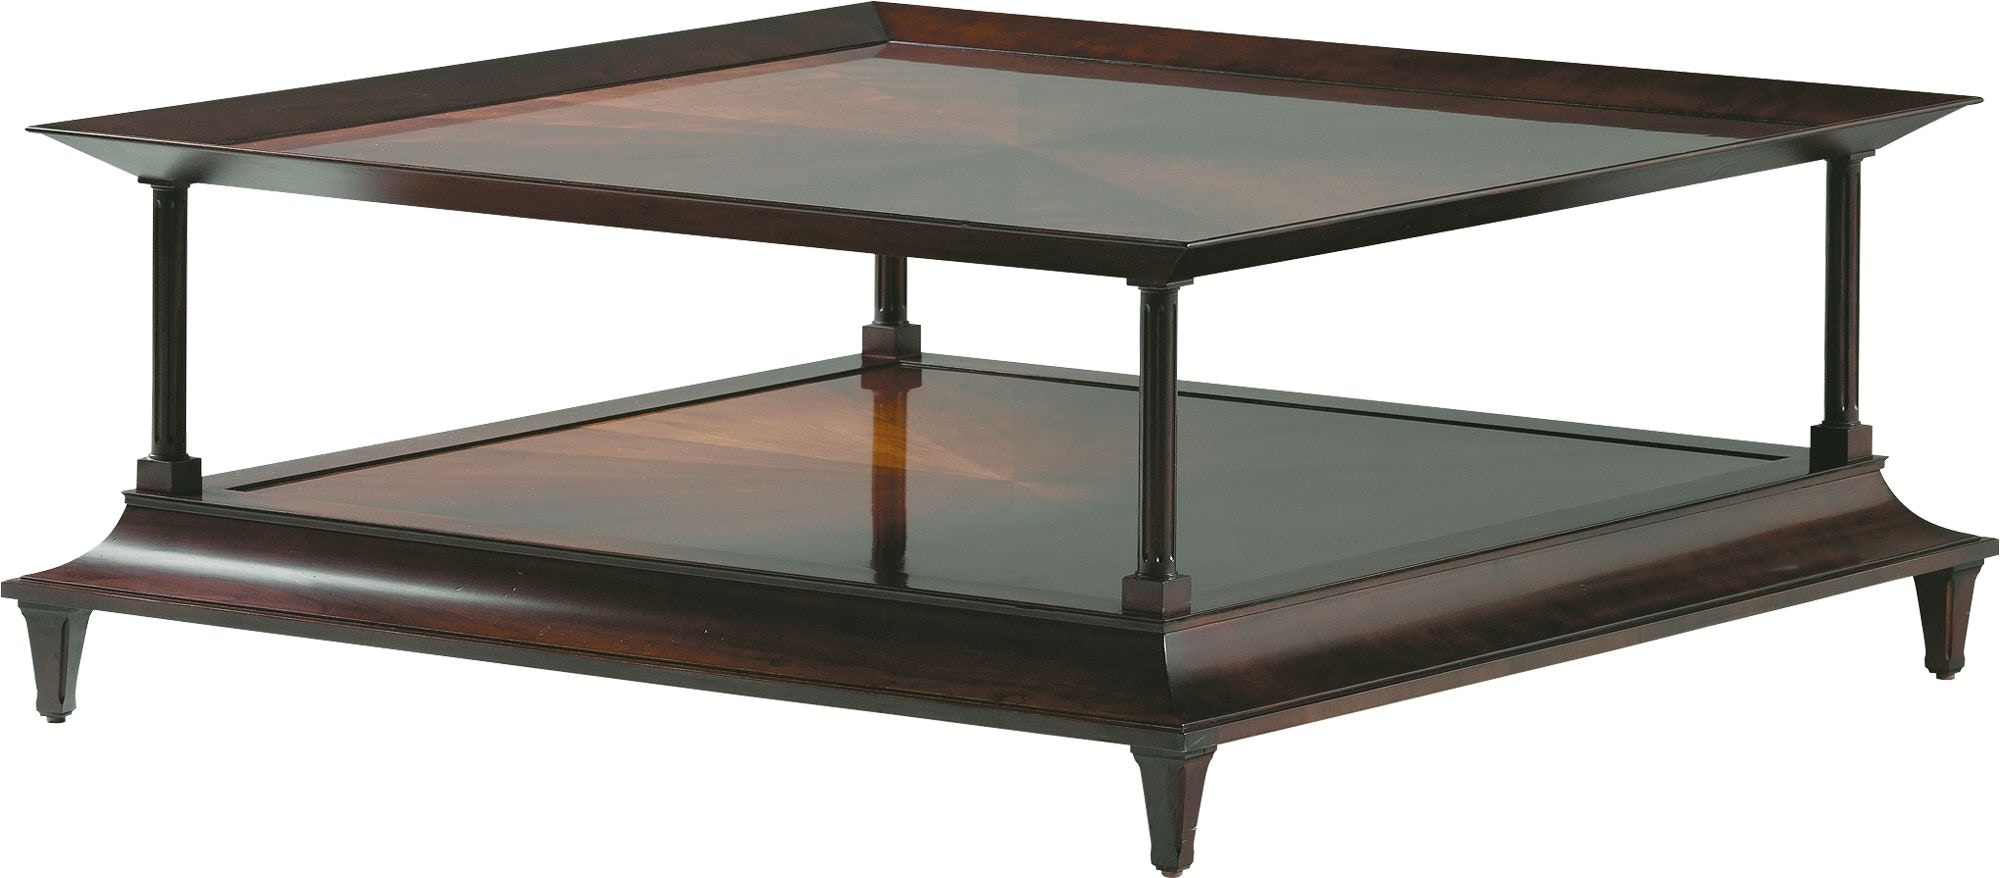 Charming Baker Furniture Jacques Garcia Coffee Table 3752